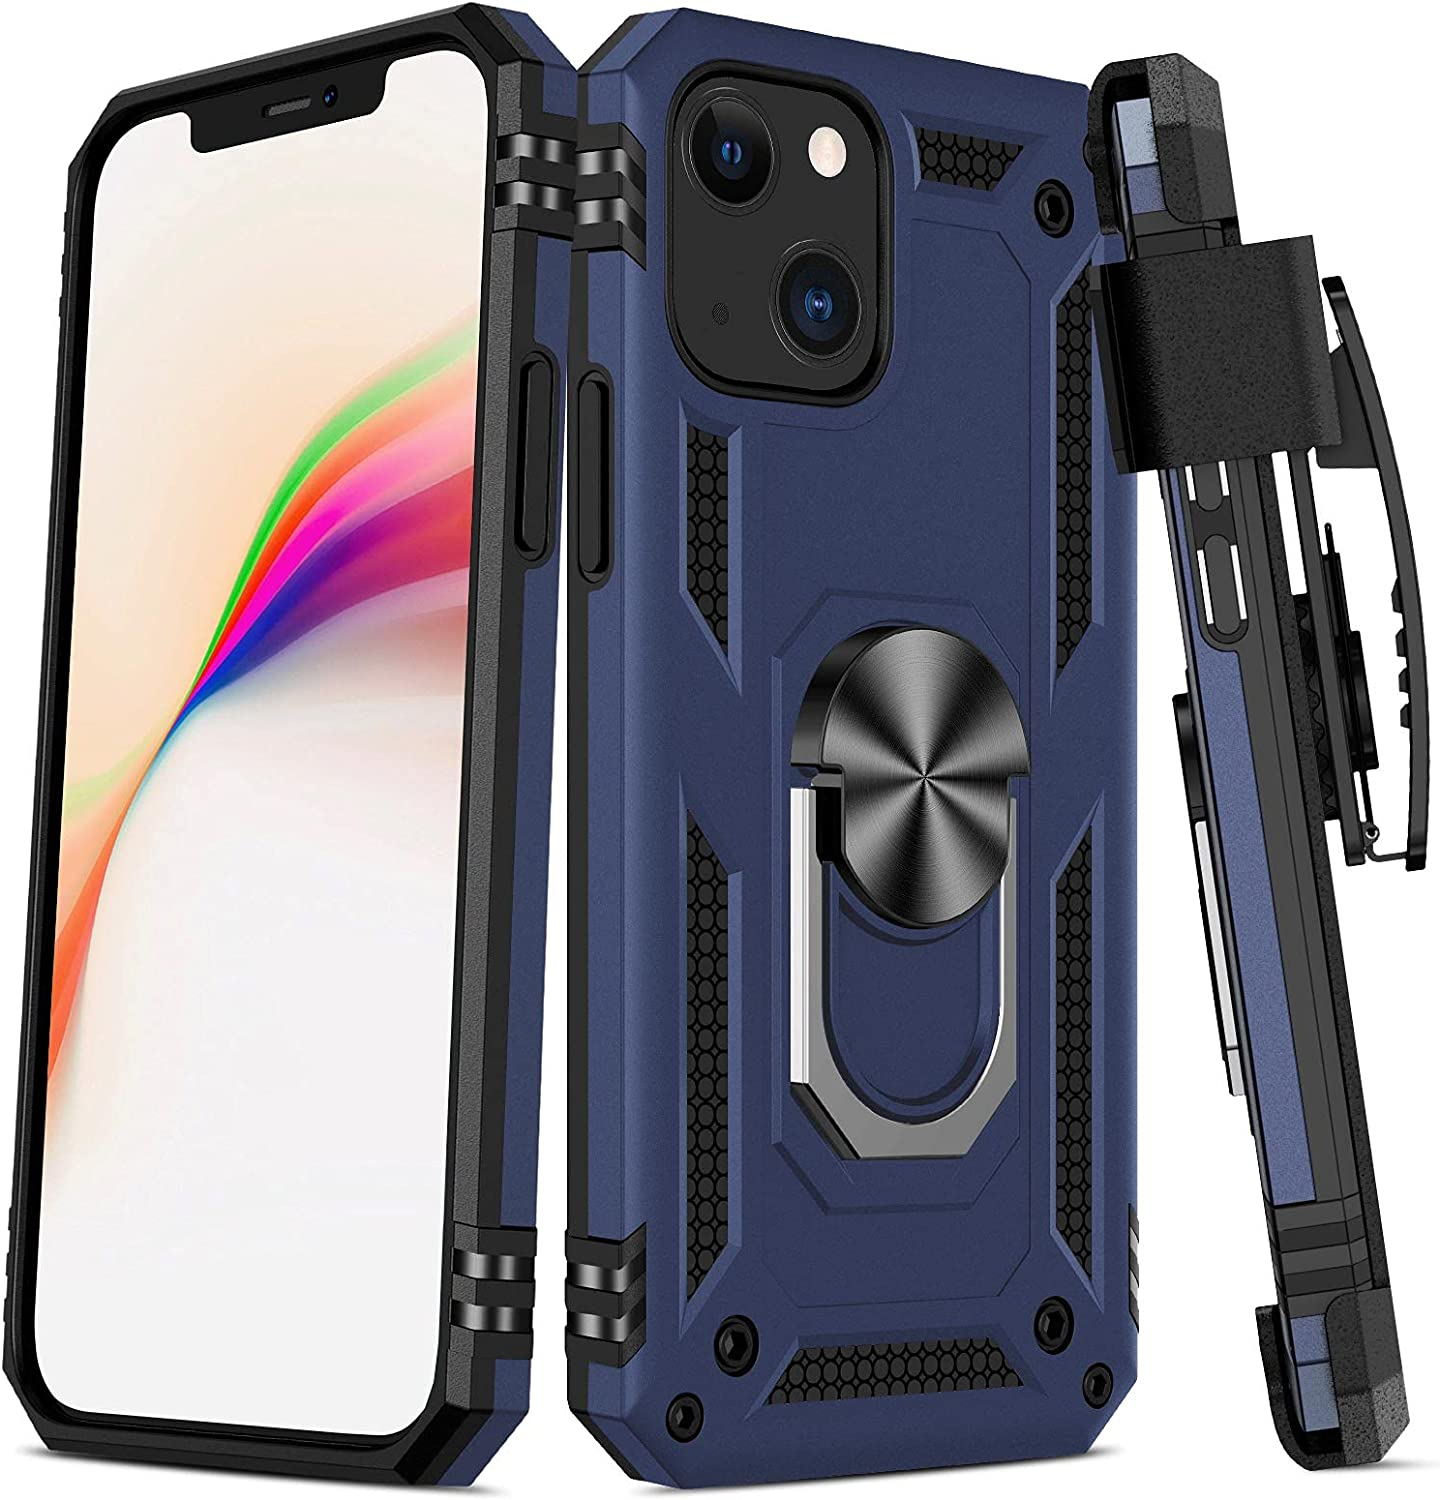 Maxdara Compatible with iPhone 13 Case, iPhone 13 Belt Clip Case Full Body Case with Ring Kickstand Dual Layer Heavy Duty Shockproof Protective Cover Case for iPhone 13 6.1 inch, Blue